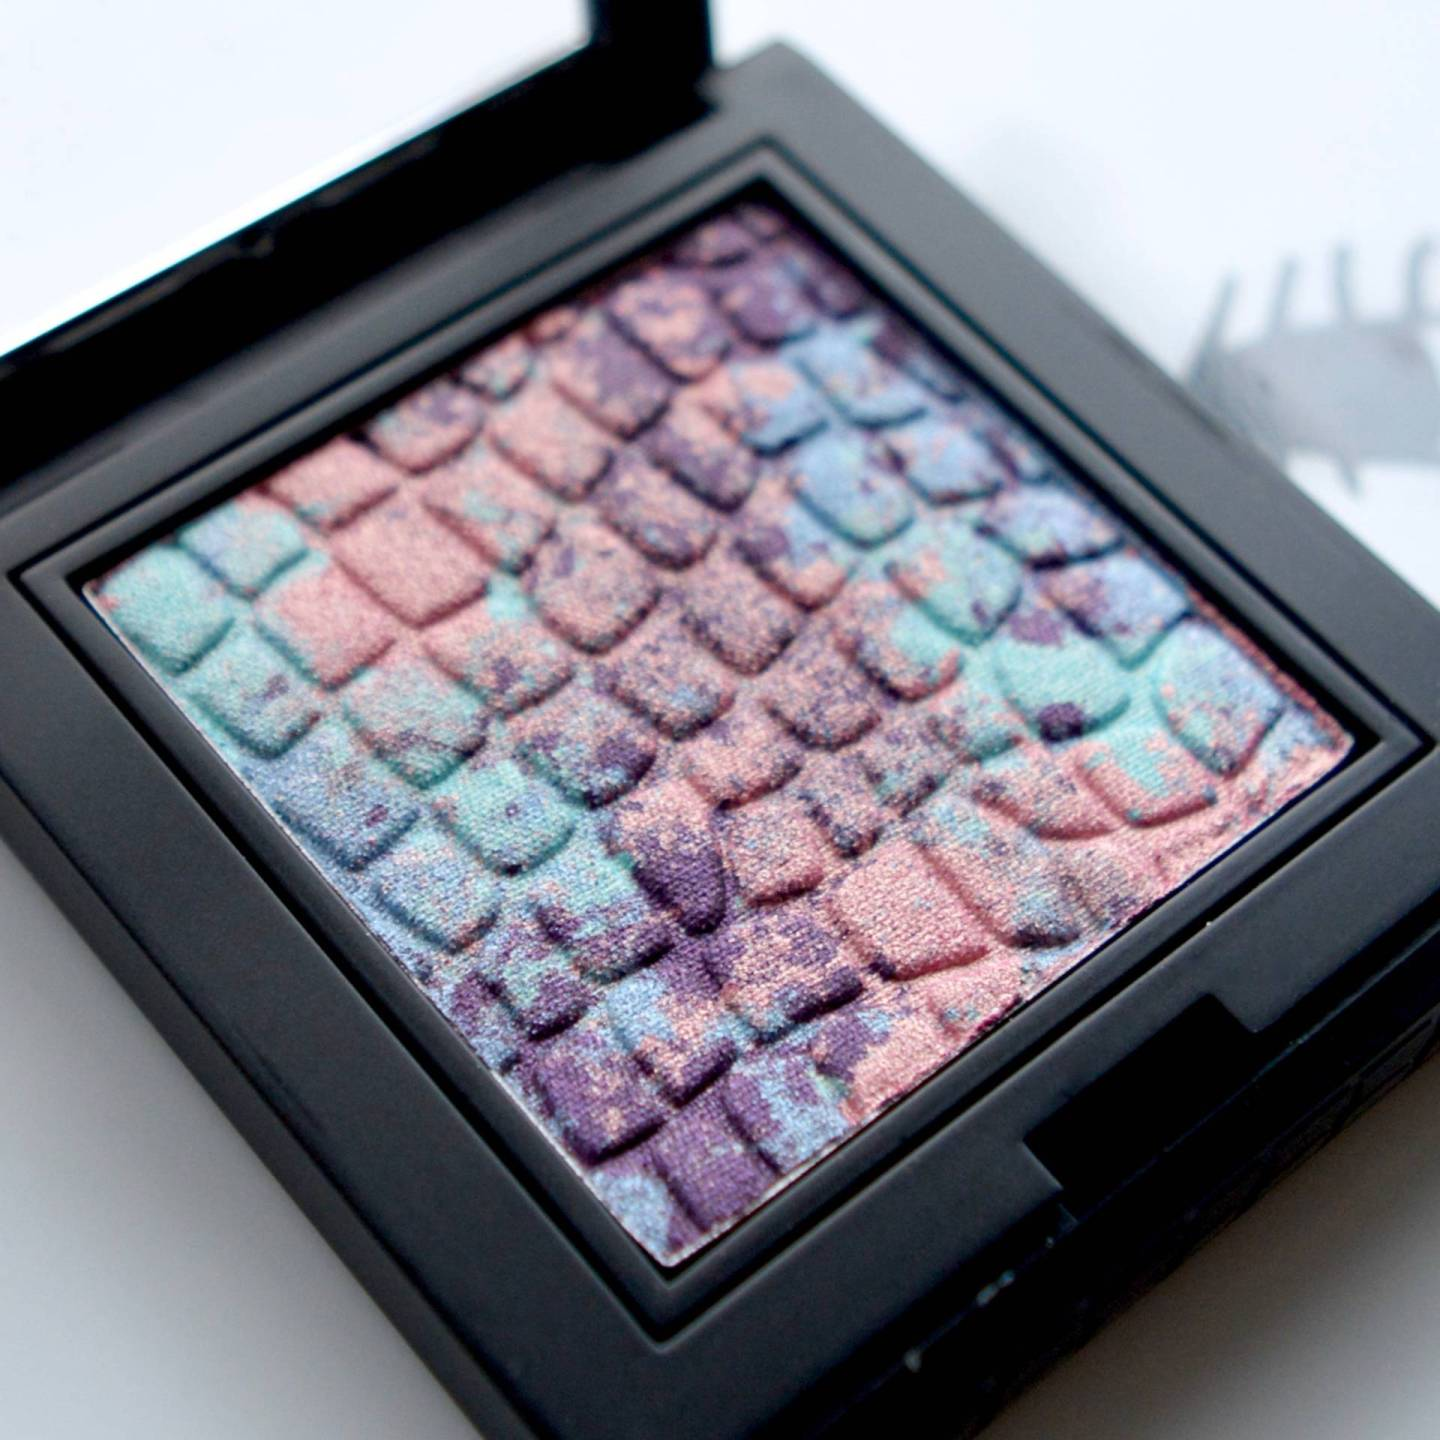 Beauty Products Too Pretty To Use: Make Up Store 'Charcoal Grey' eyeshadow